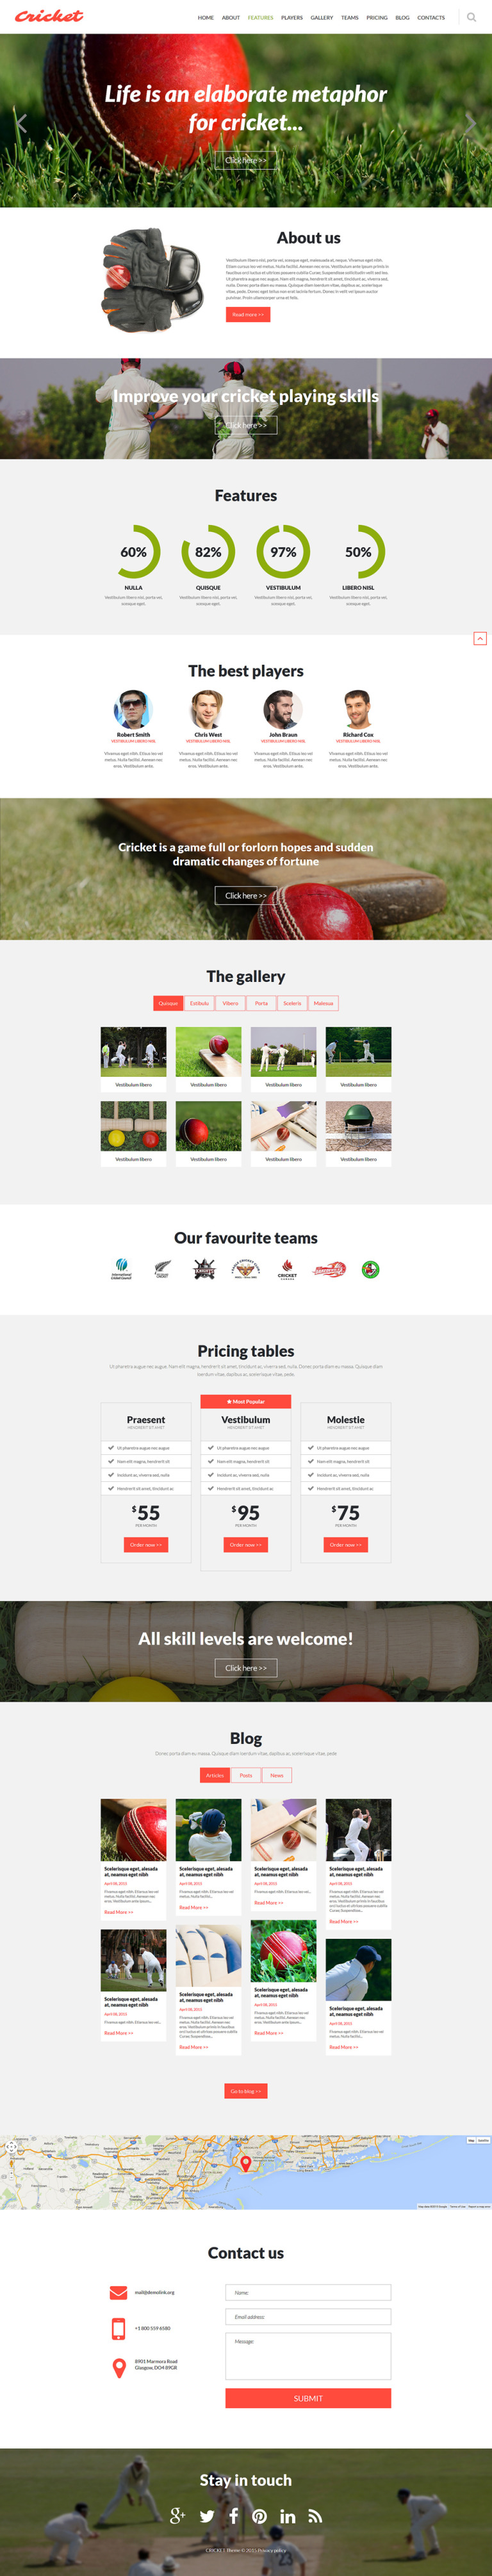 Cricket Club Joomla Template New Screenshots BIG